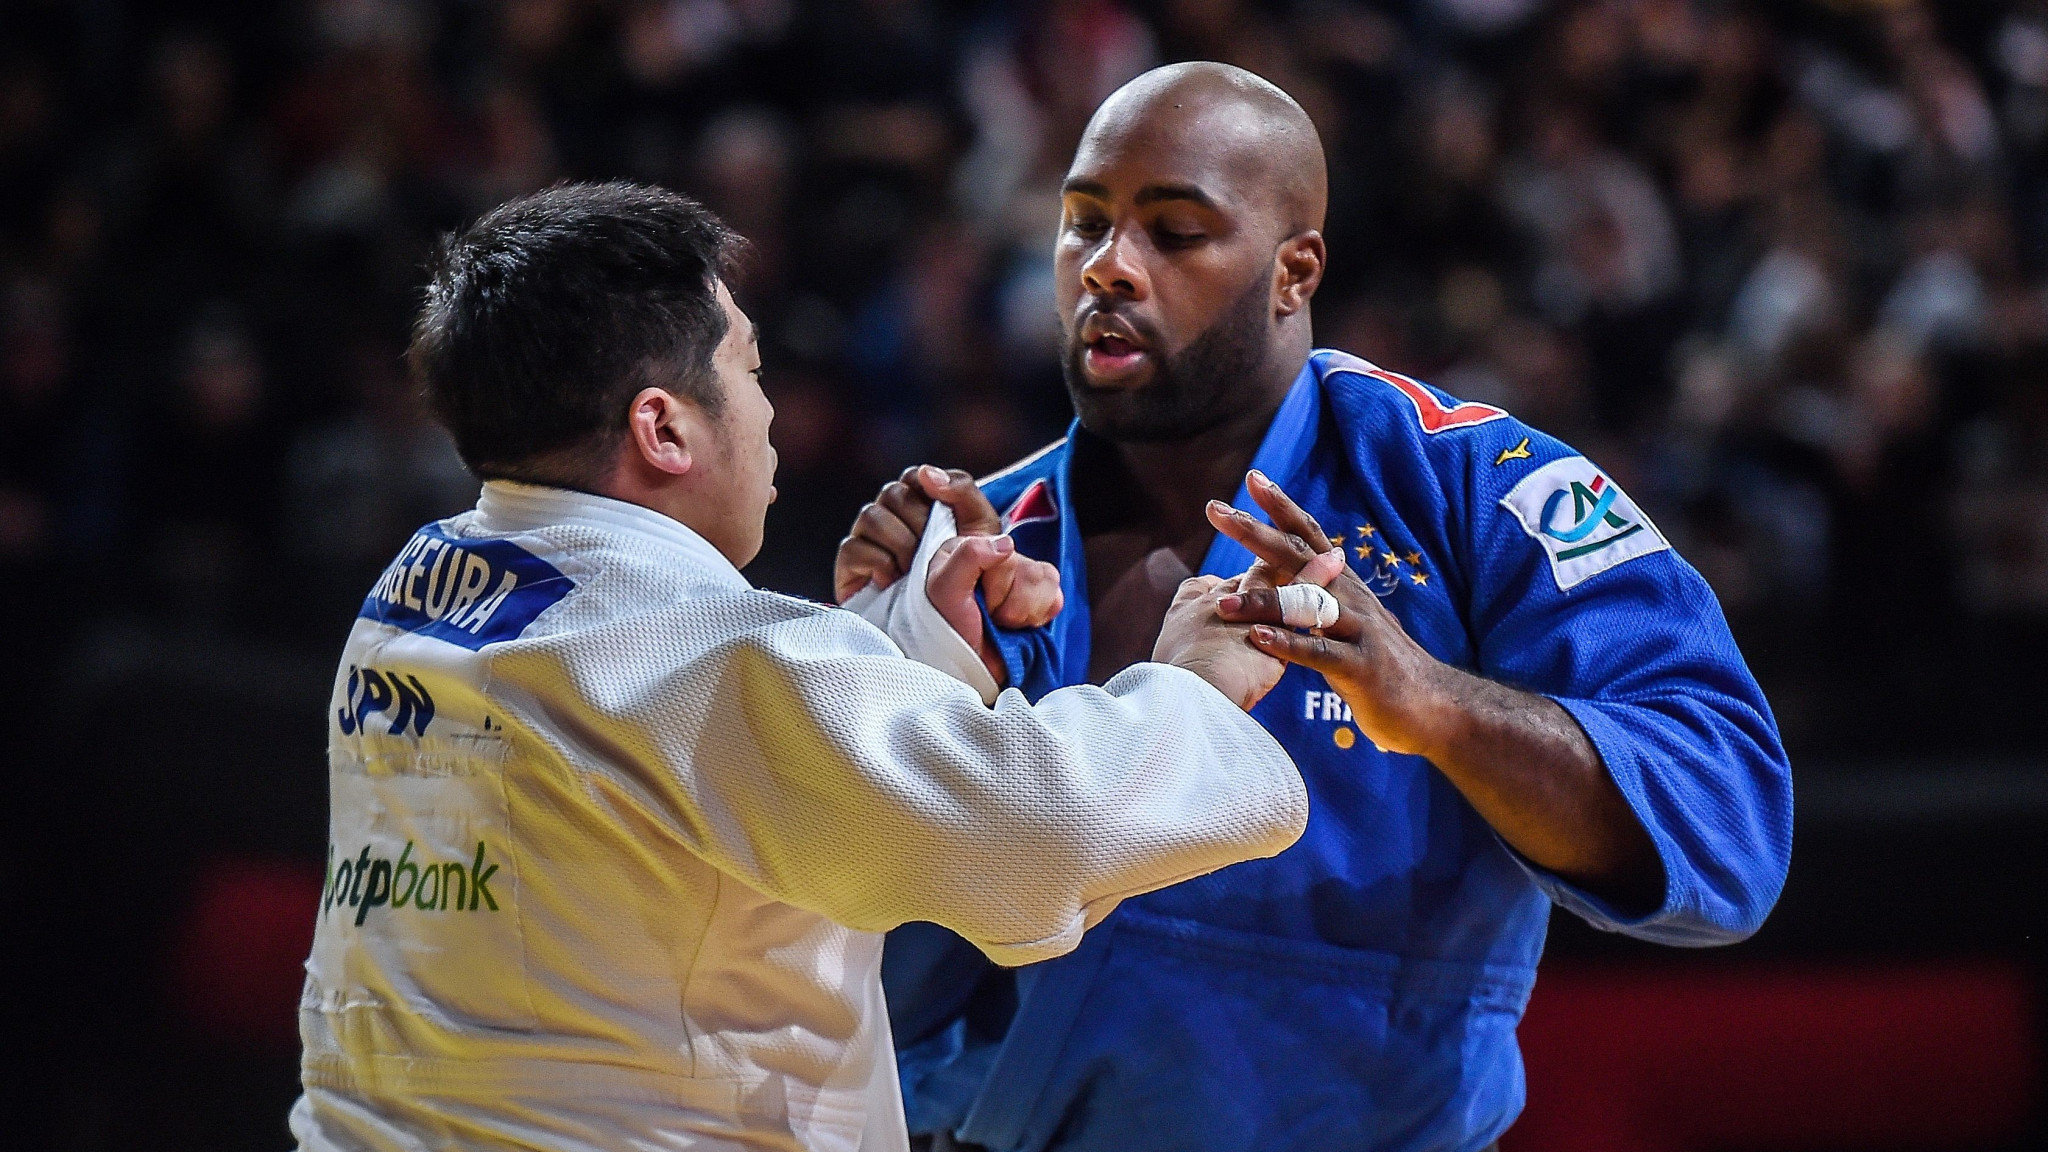 Kokoro Kageura, left, shocked French icon Teddy Riner in Paris ©Getty Images